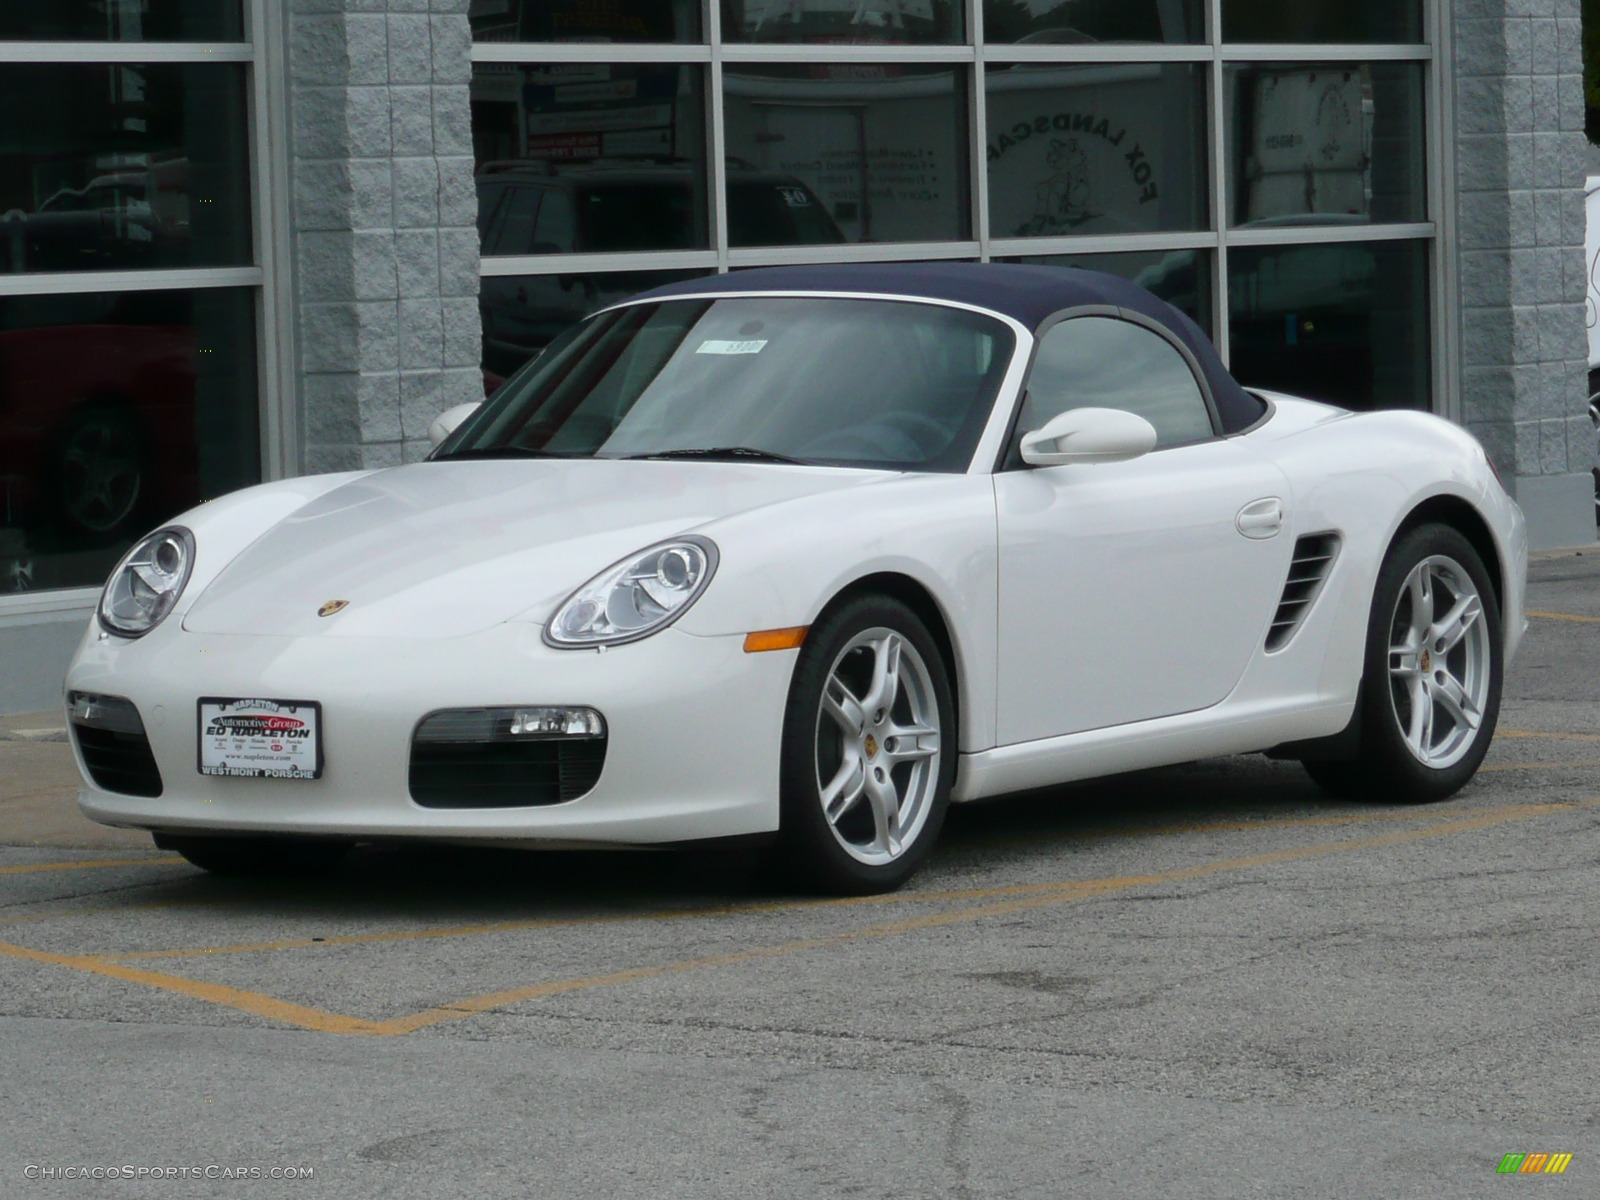 2007 porsche boxster in carrara white 711940 cars for sale in illinois. Black Bedroom Furniture Sets. Home Design Ideas